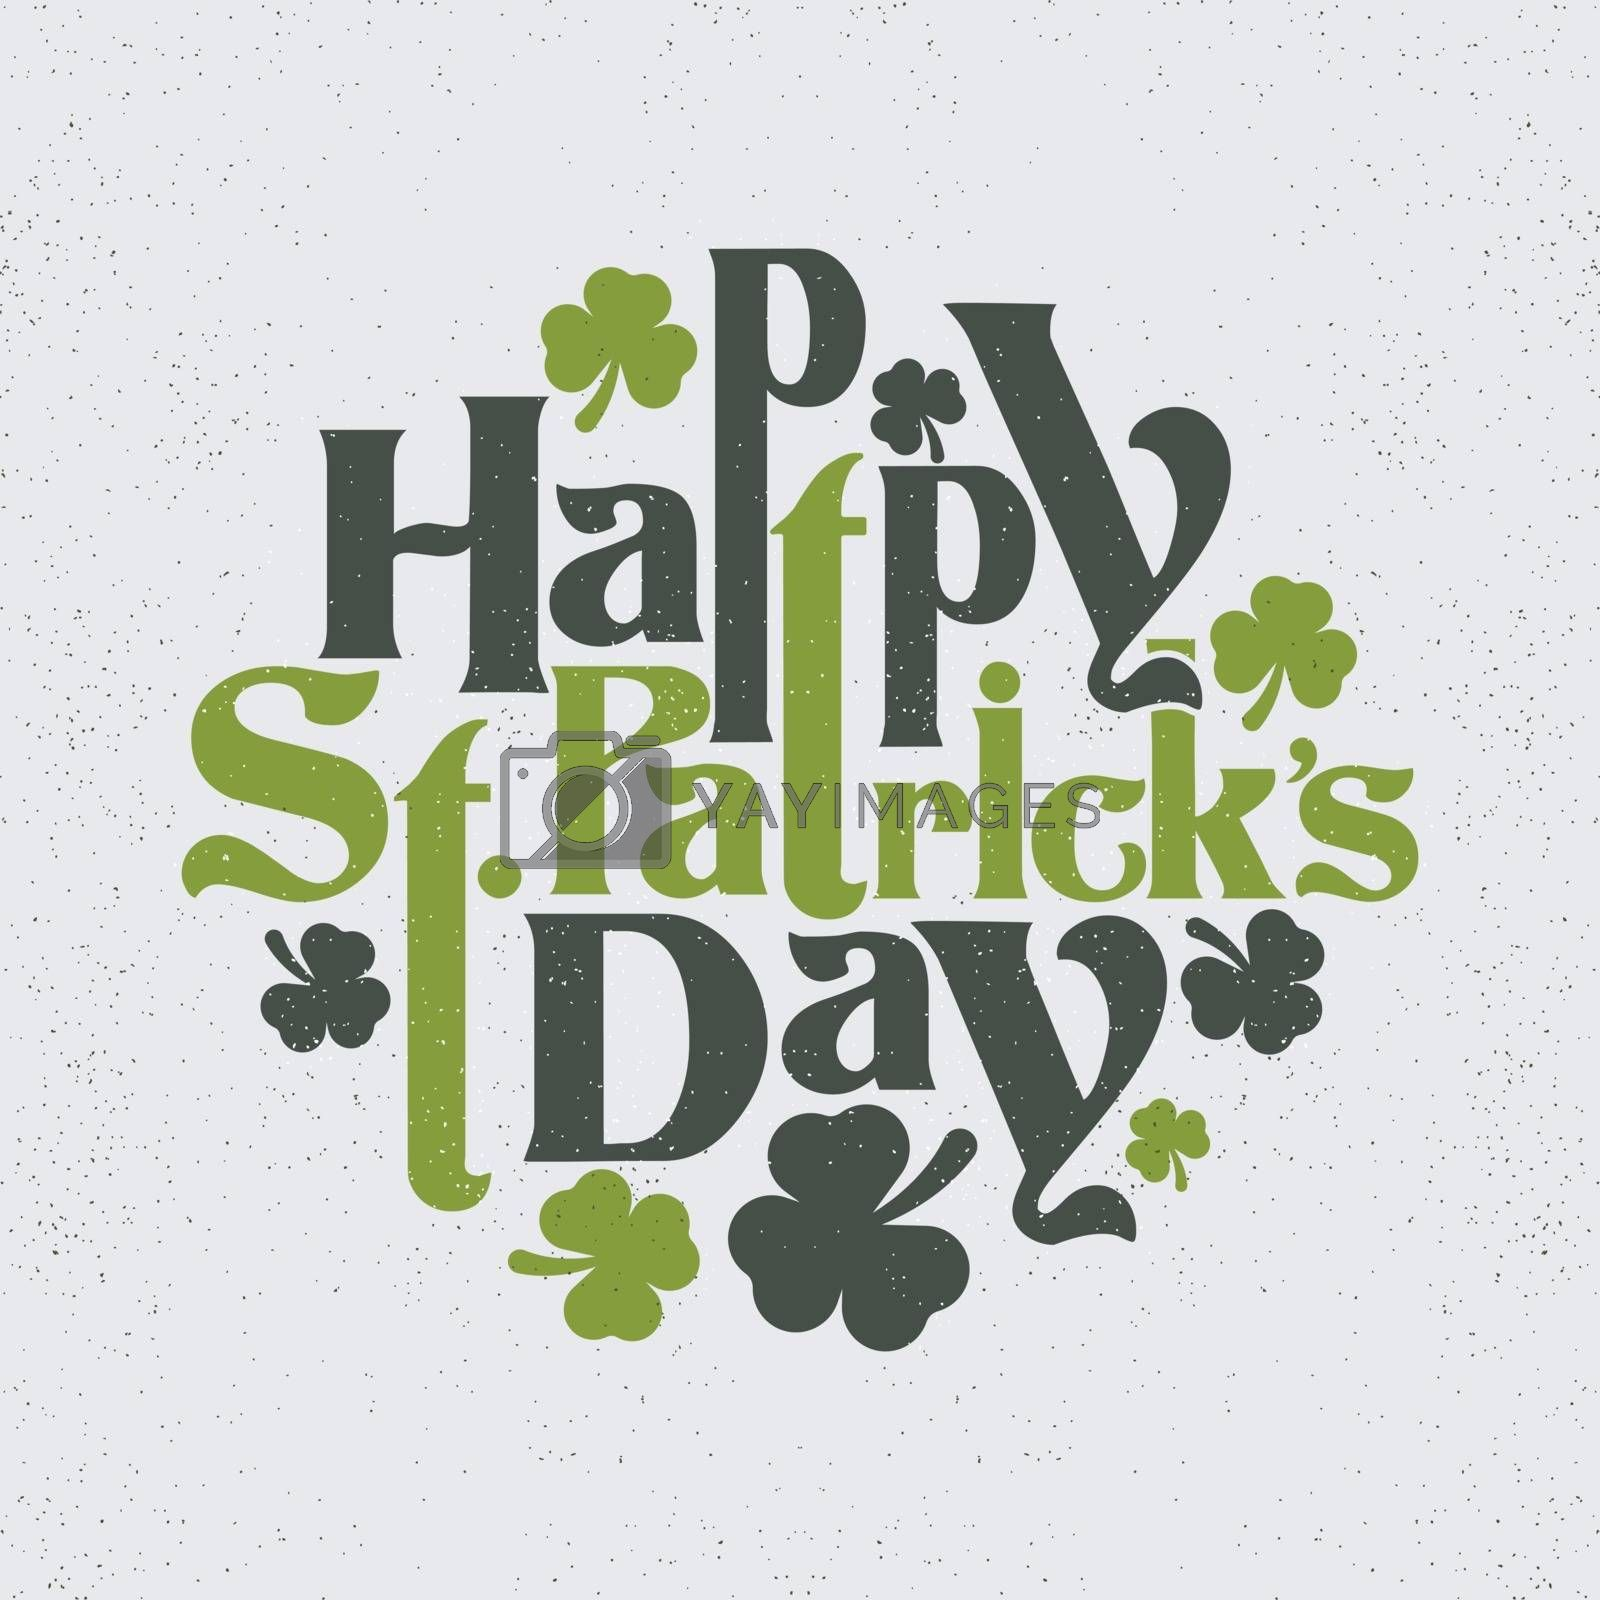 Happy St. Patrick's Day vintage lettering design with shamrock leaves.